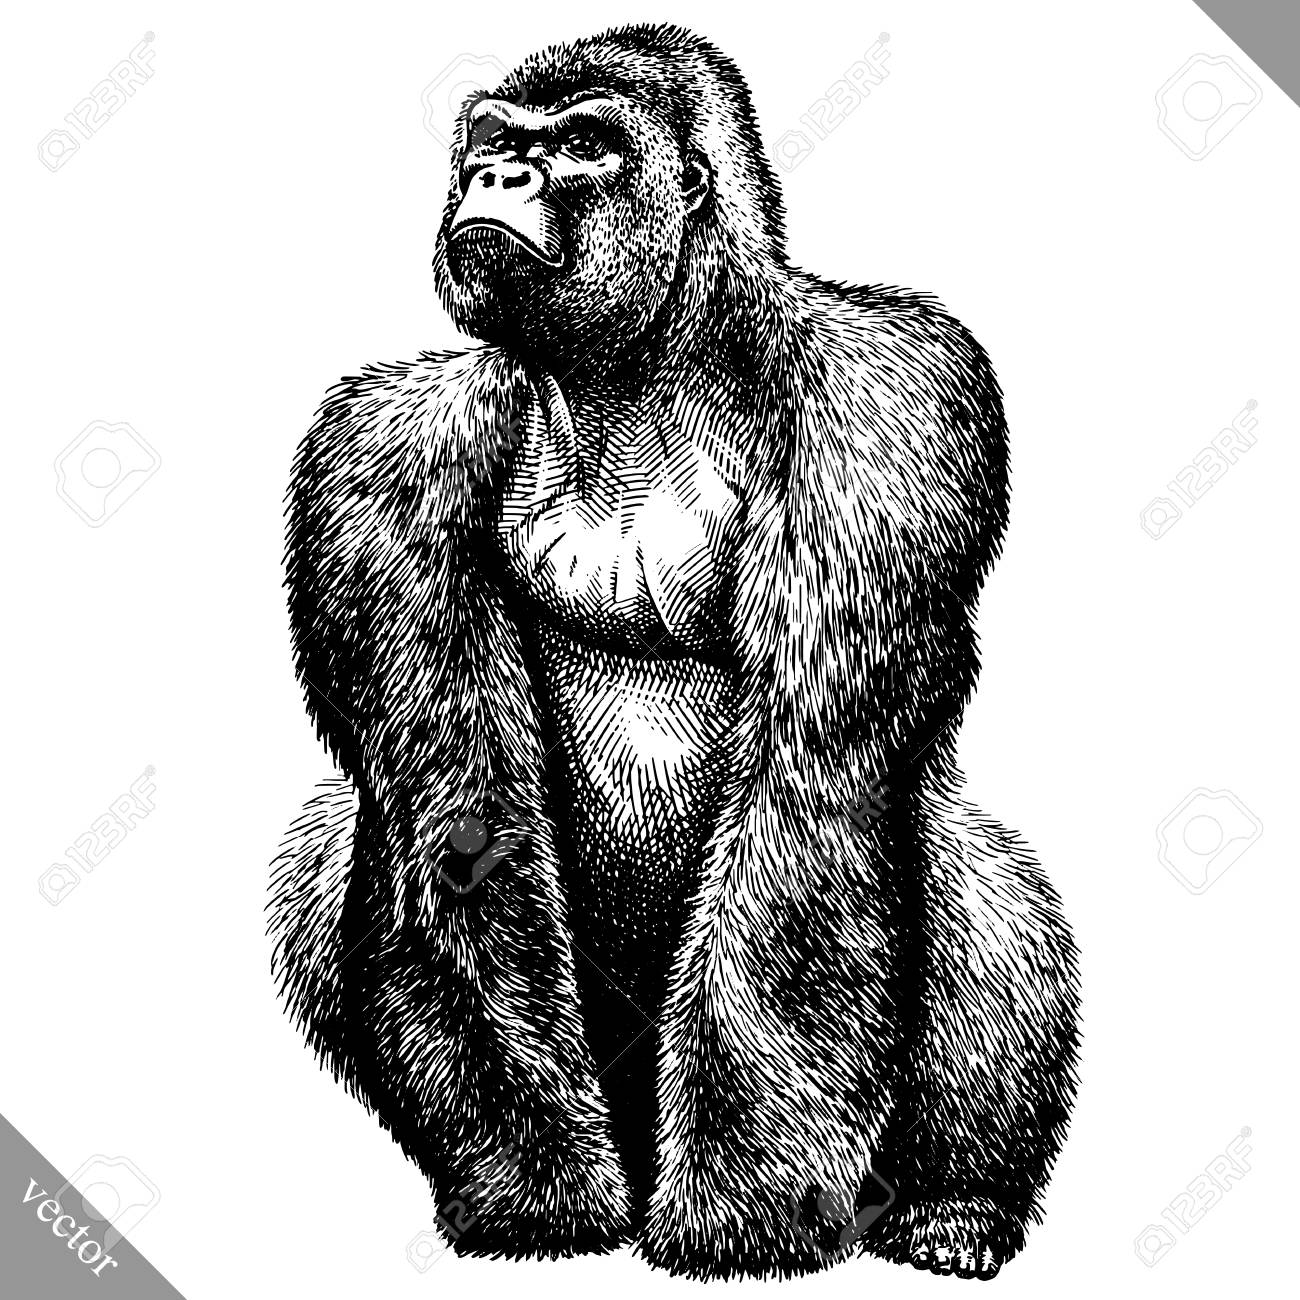 black and white engrave isolated monkey vector illustration - 91102960